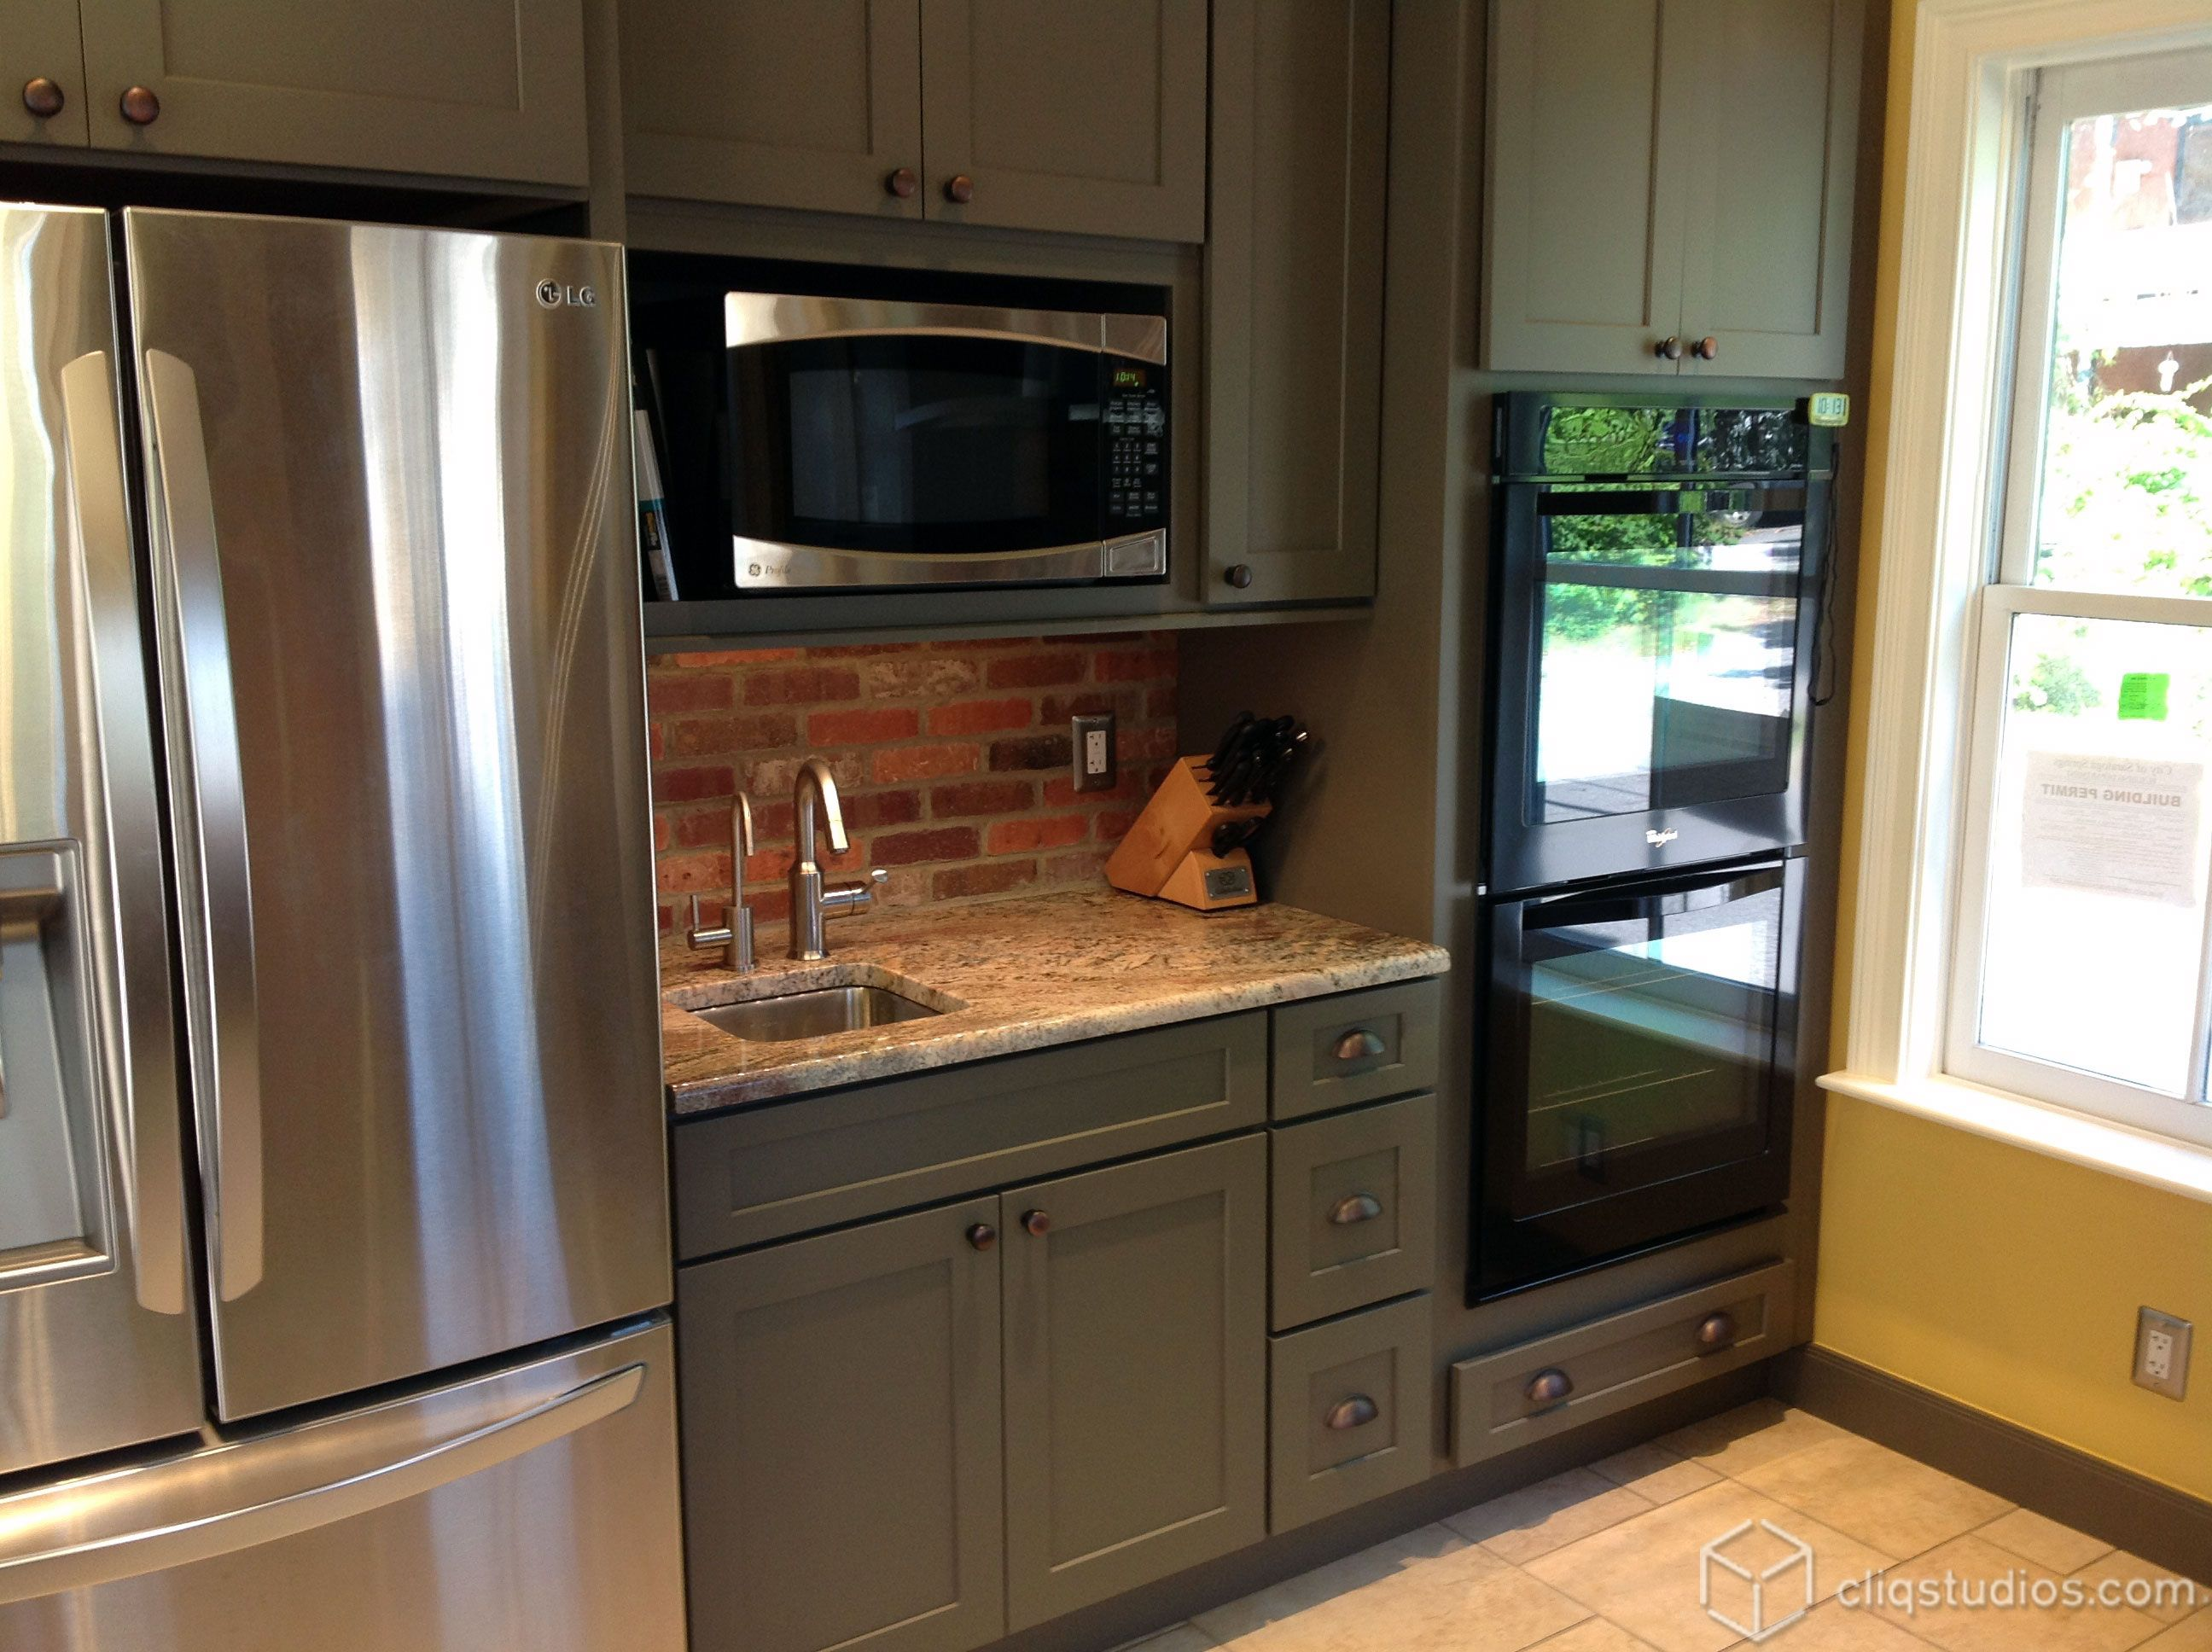 Kitchen Cabinets Dayton Ohio Dayton Painted Tea Leaf Mission Kitchen Cabinets From Cliqstudios